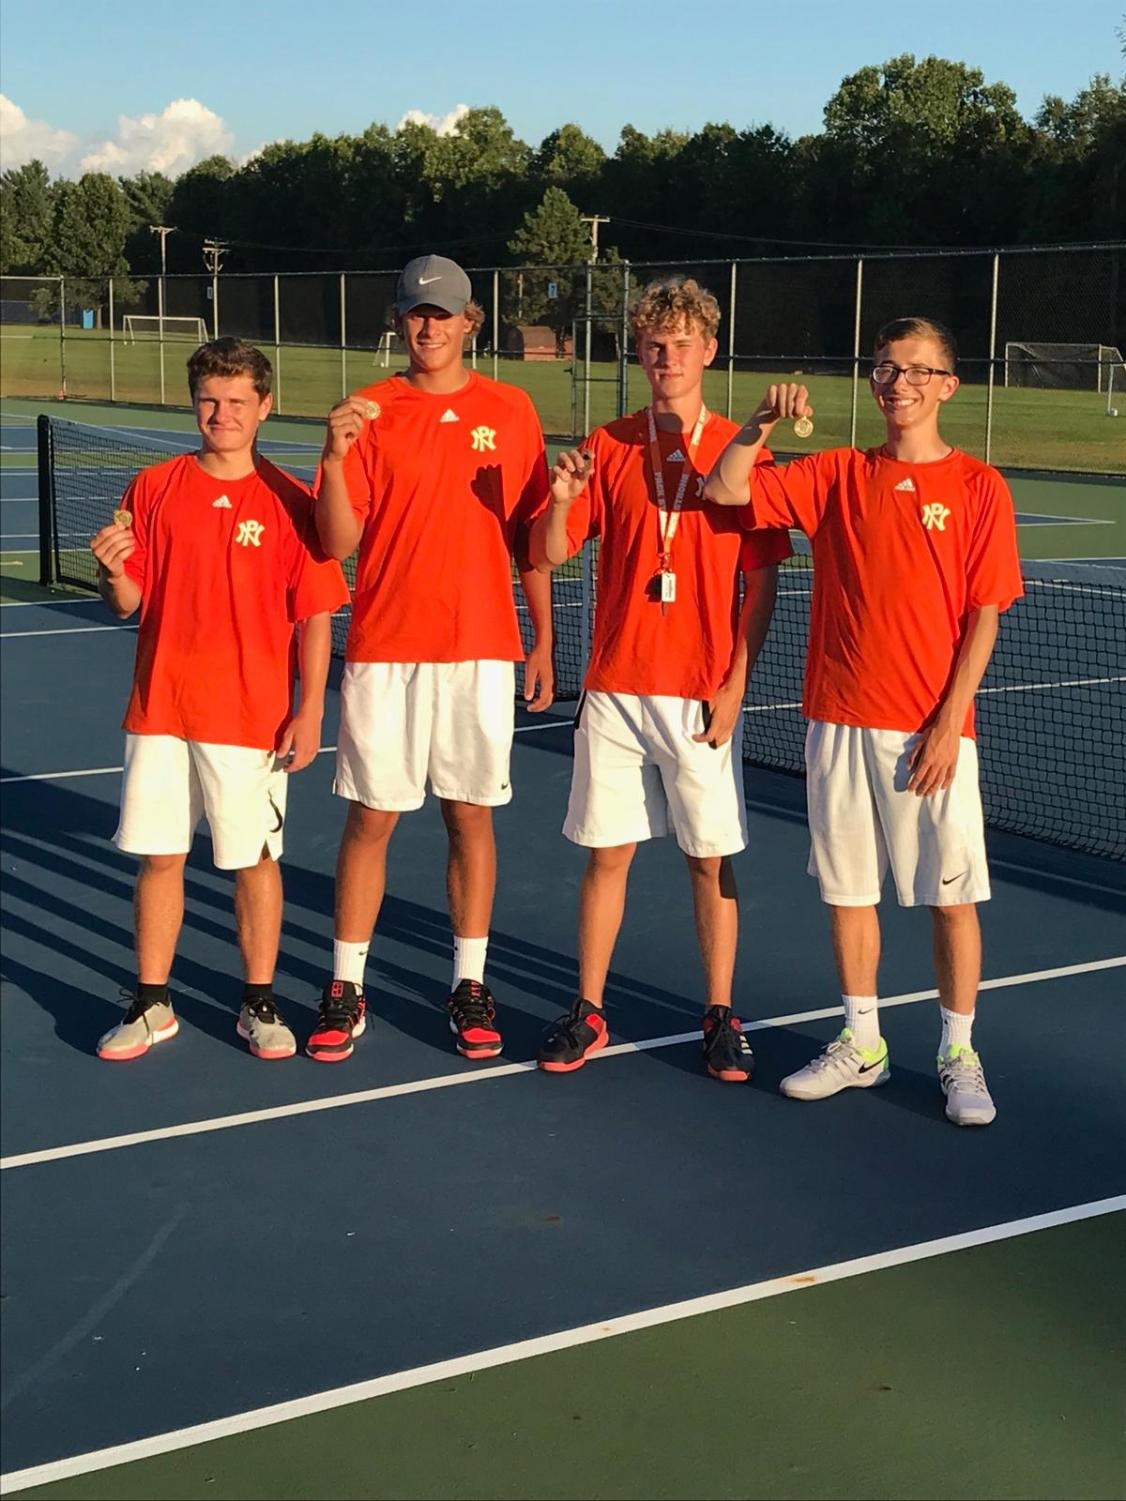 Alex Wootton, Jackson Graham, Graham Holley and Keegan Bach celebrate with their medals after winning their flights at the Greater Kalamazoo tournament. This was the first time in history that Northern swept singles.